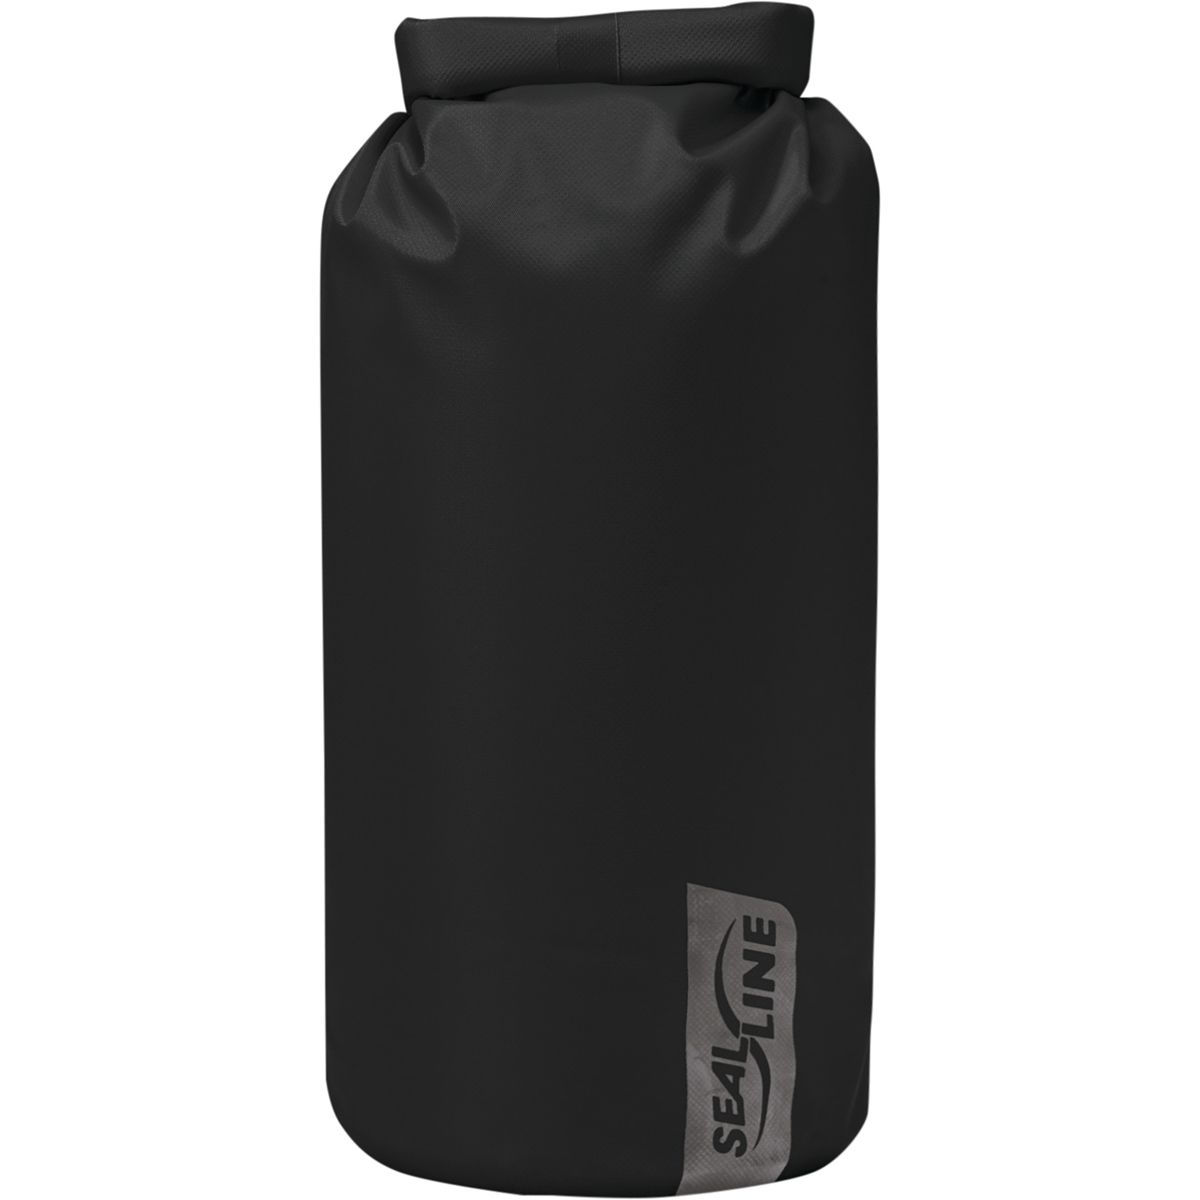 SealLine Baja Dry Bag